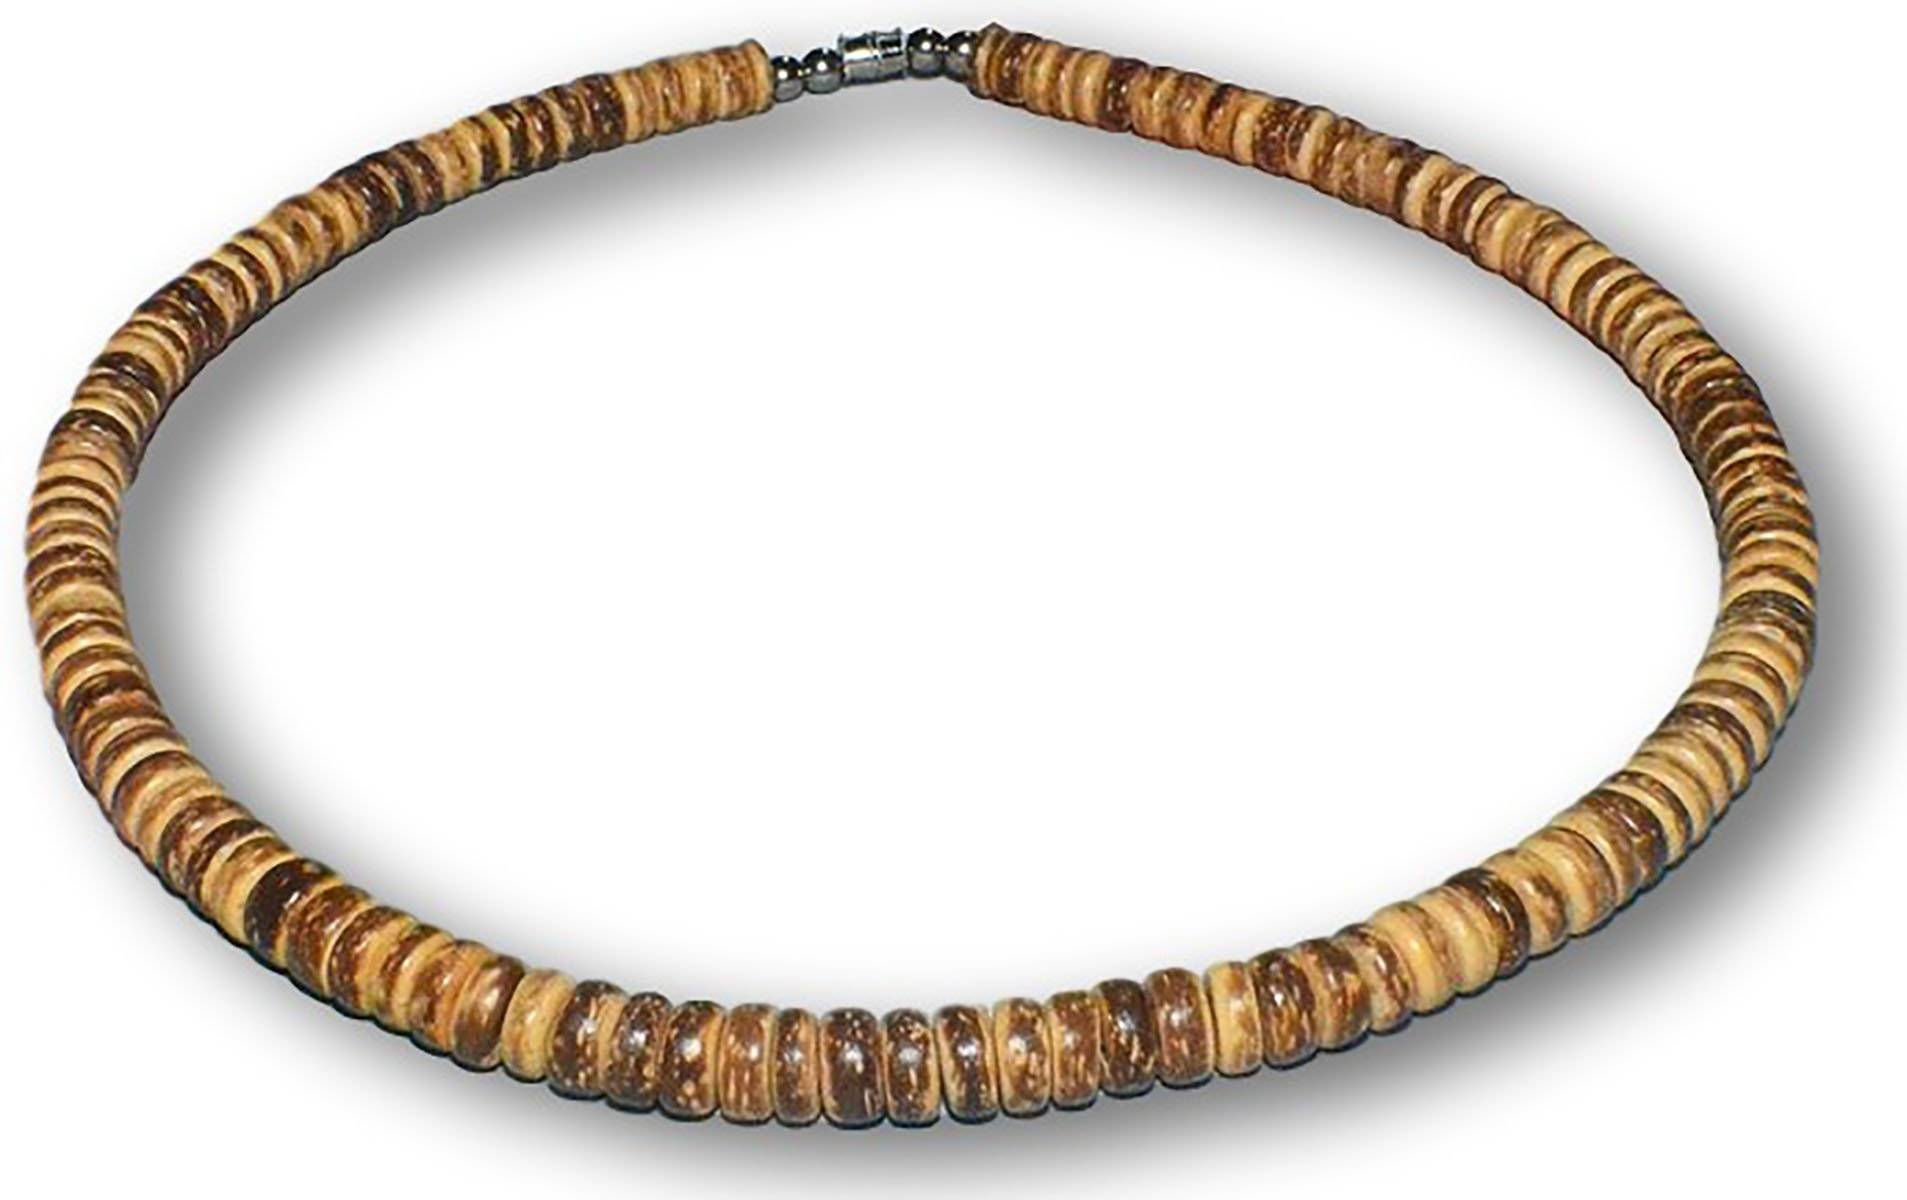 Native Treasure - Brown Tiger Coco Shell Surfer Necklace - 8mm (5/16'') (18 Inches)